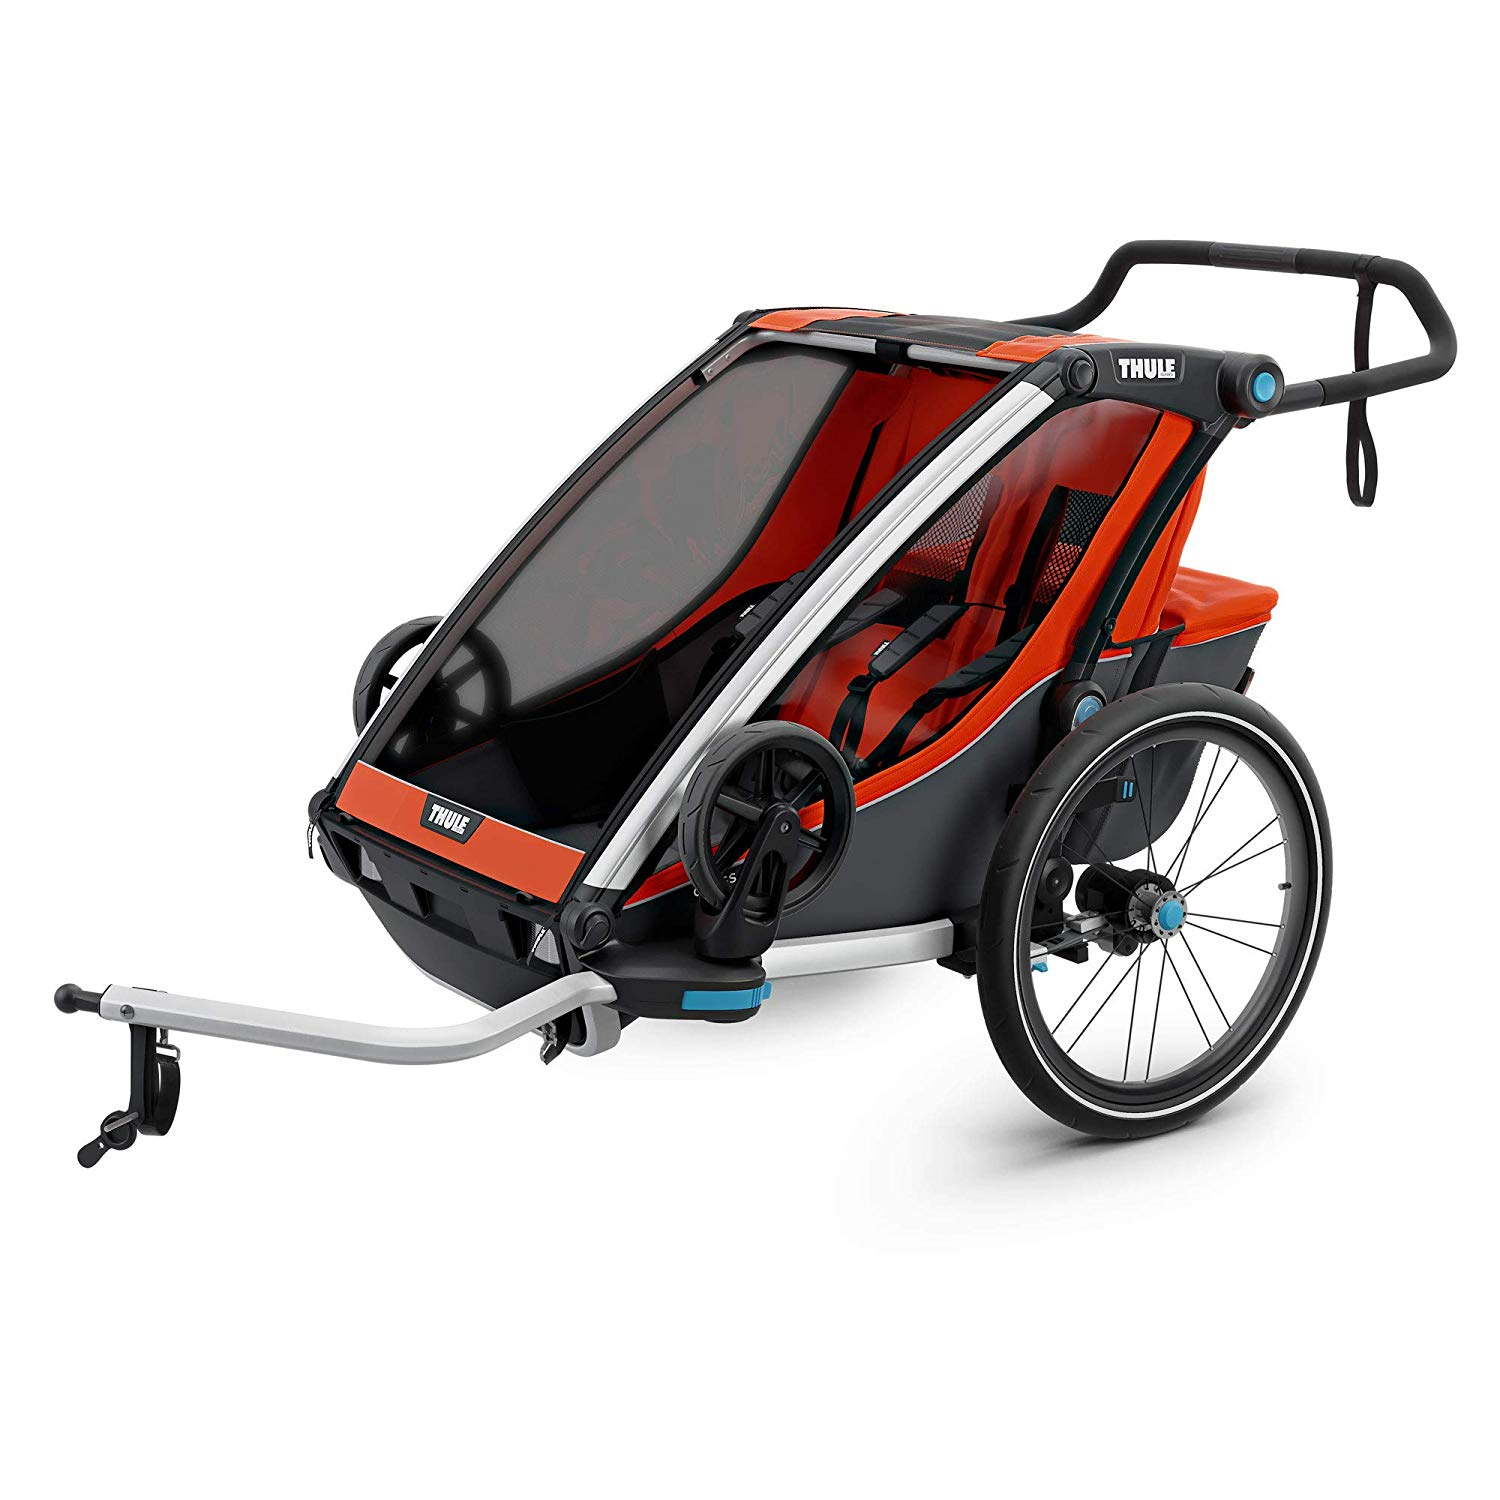 Best Baby Bike Trailer for Active / Sport Use